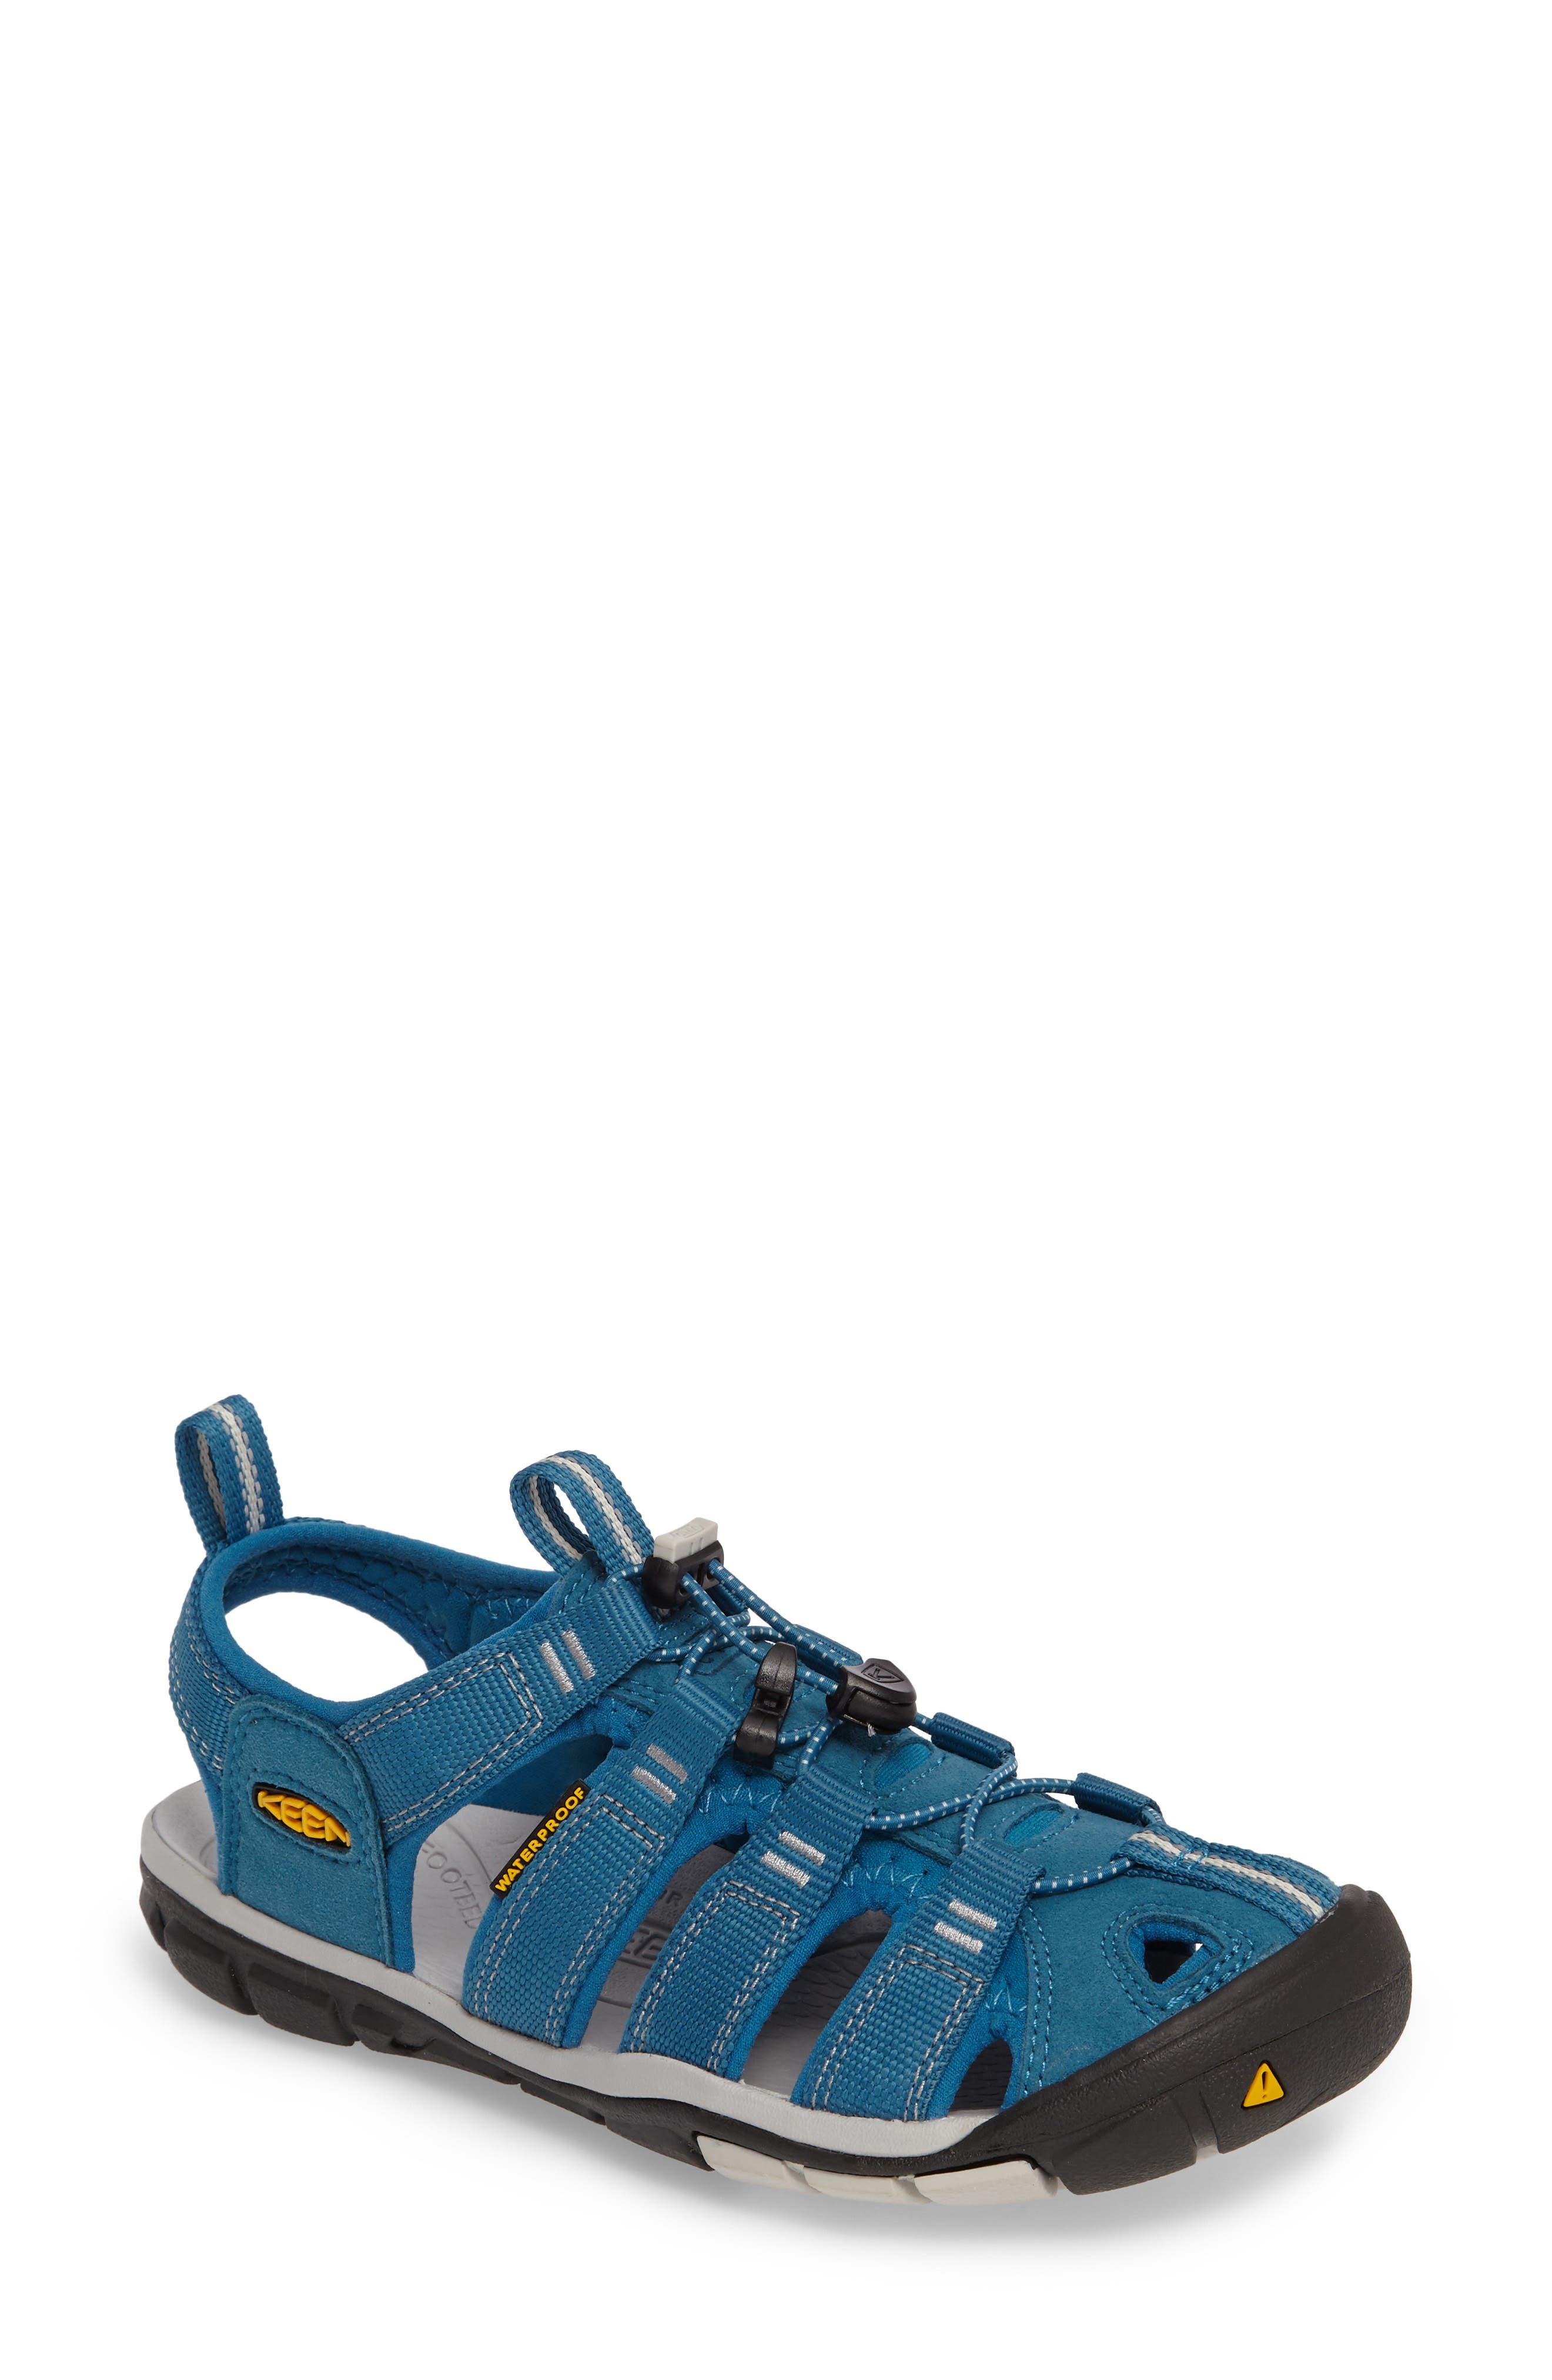 9fdcb2cd31d Keen  Clearwater Cnx  Sandal- Blue